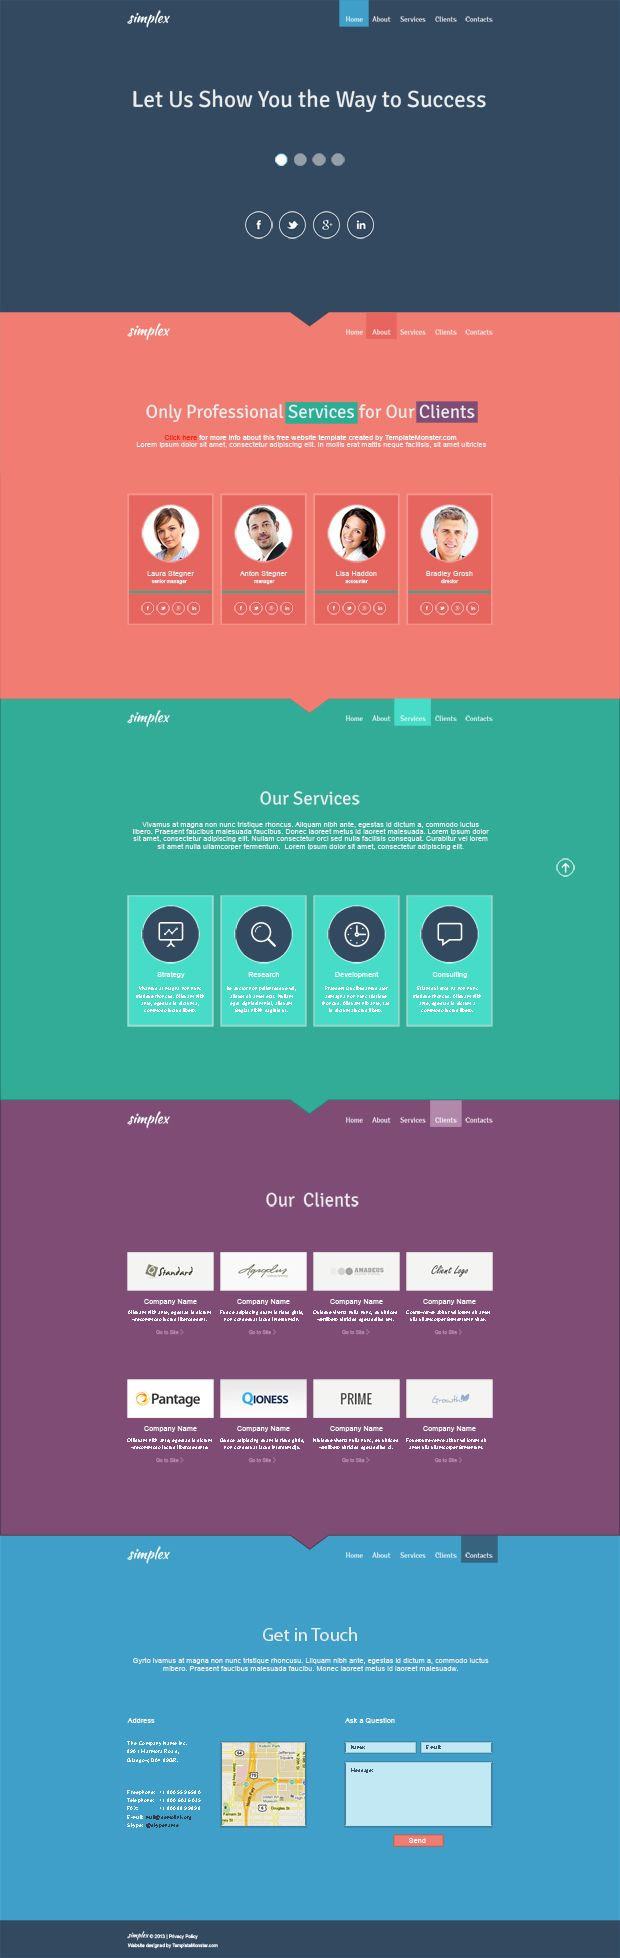 33 best images about Free One Page HTML Templates on Pinterest